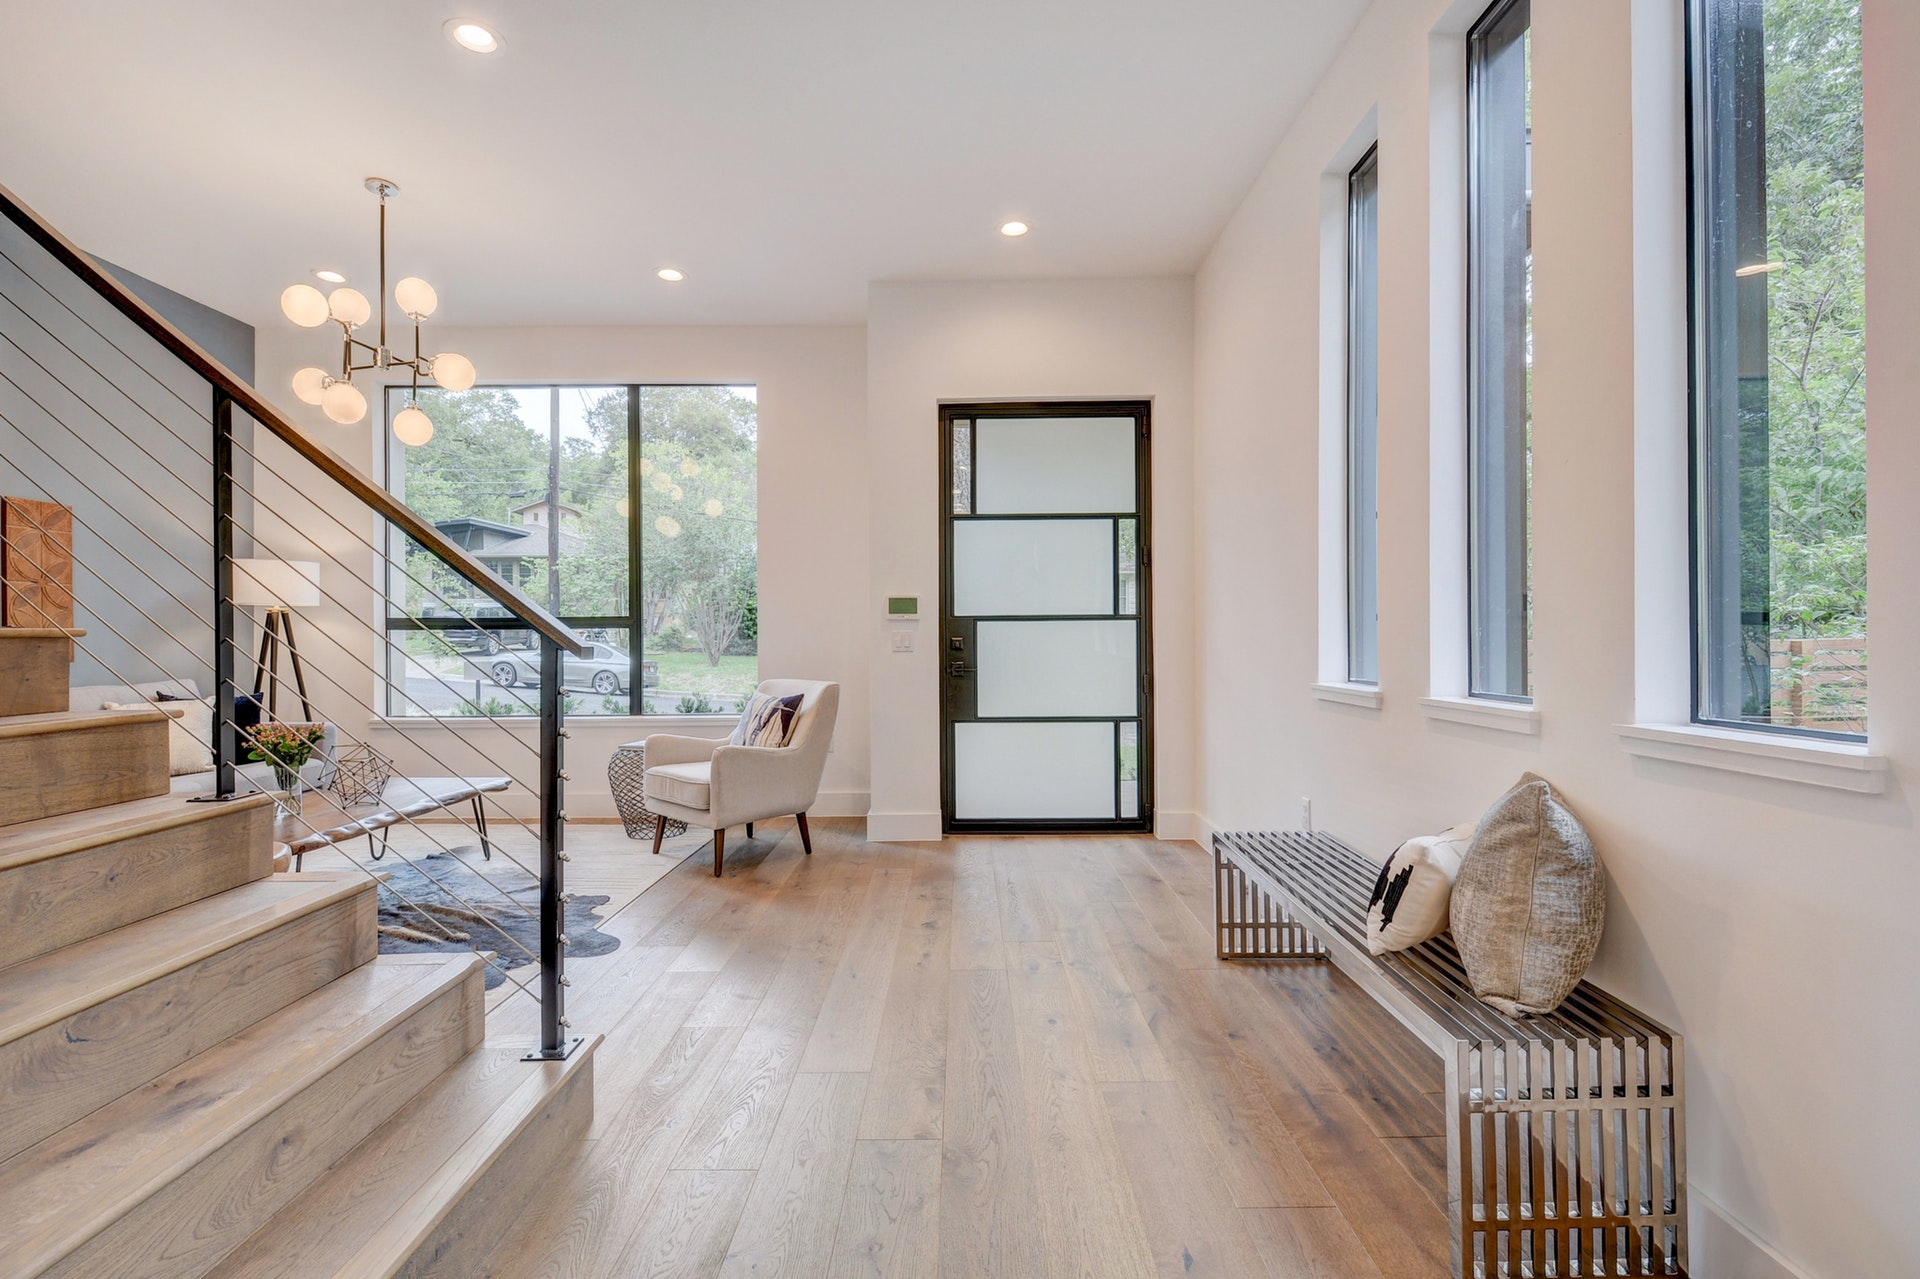 The custom steel and glass Durango door was one of the design starting points. The metal elements are picked up at the cable railing stairwell and the Restoration Hardware Bistro light fixture in the formal living room. This entry foyer is sure to impress.